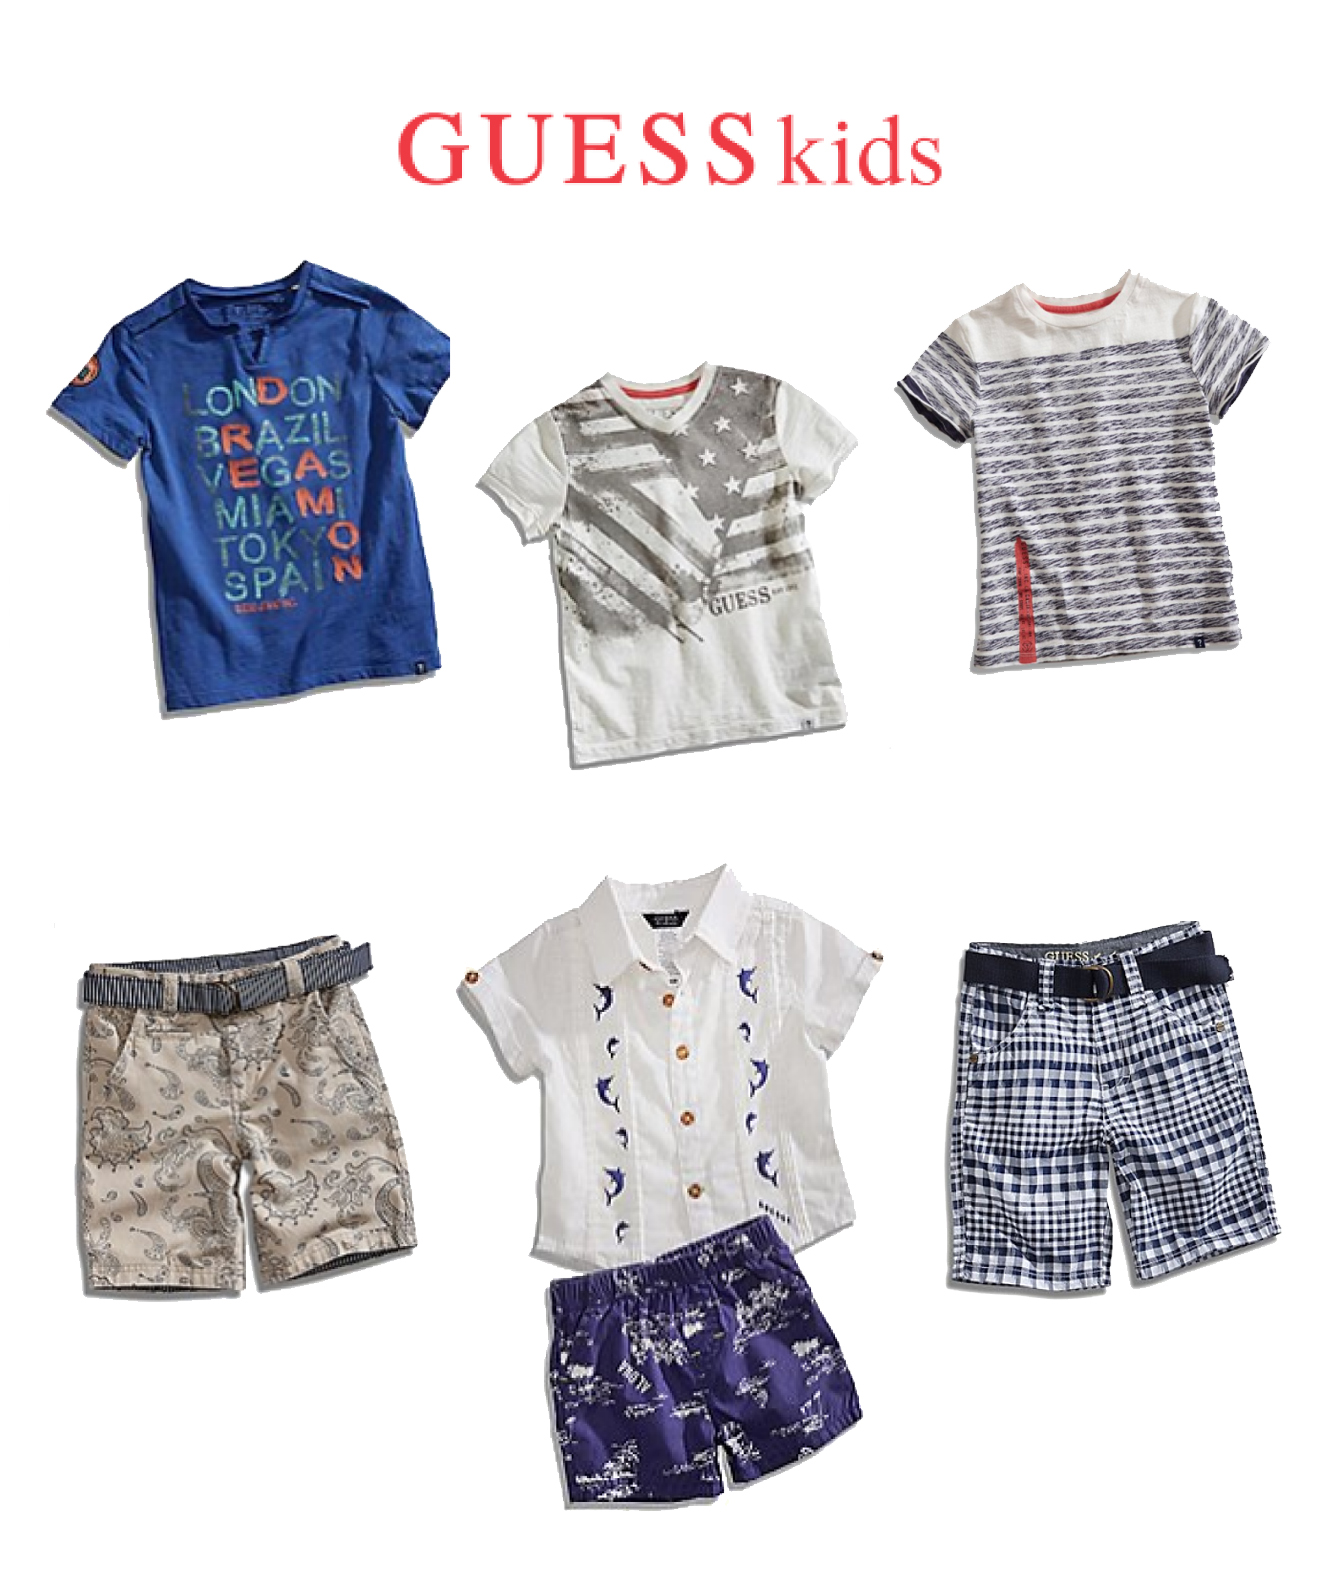 baby guess outlet    guesskids